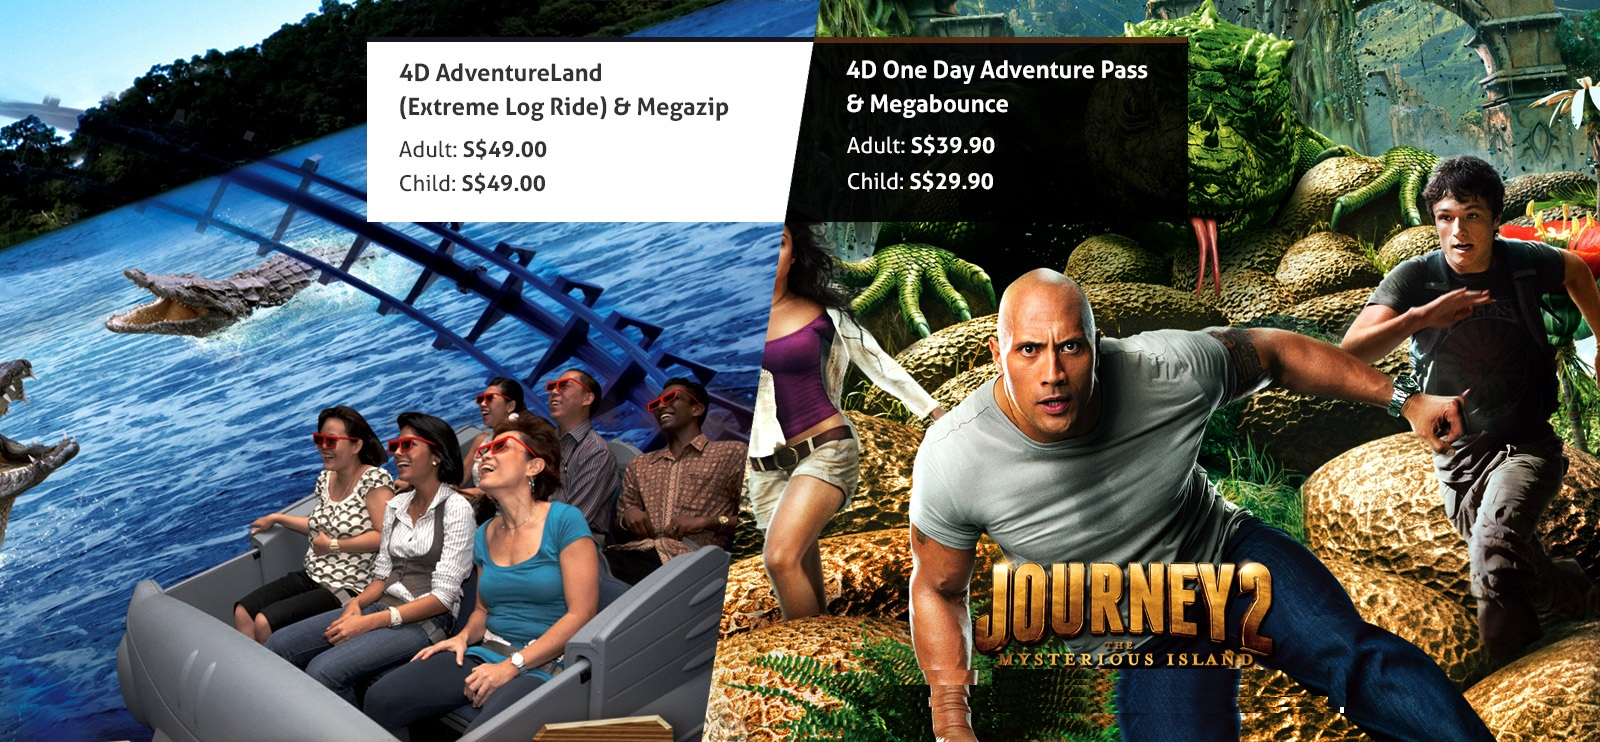 journey 2 ride at sentosa 4d enjoy most thrilling 4d rides